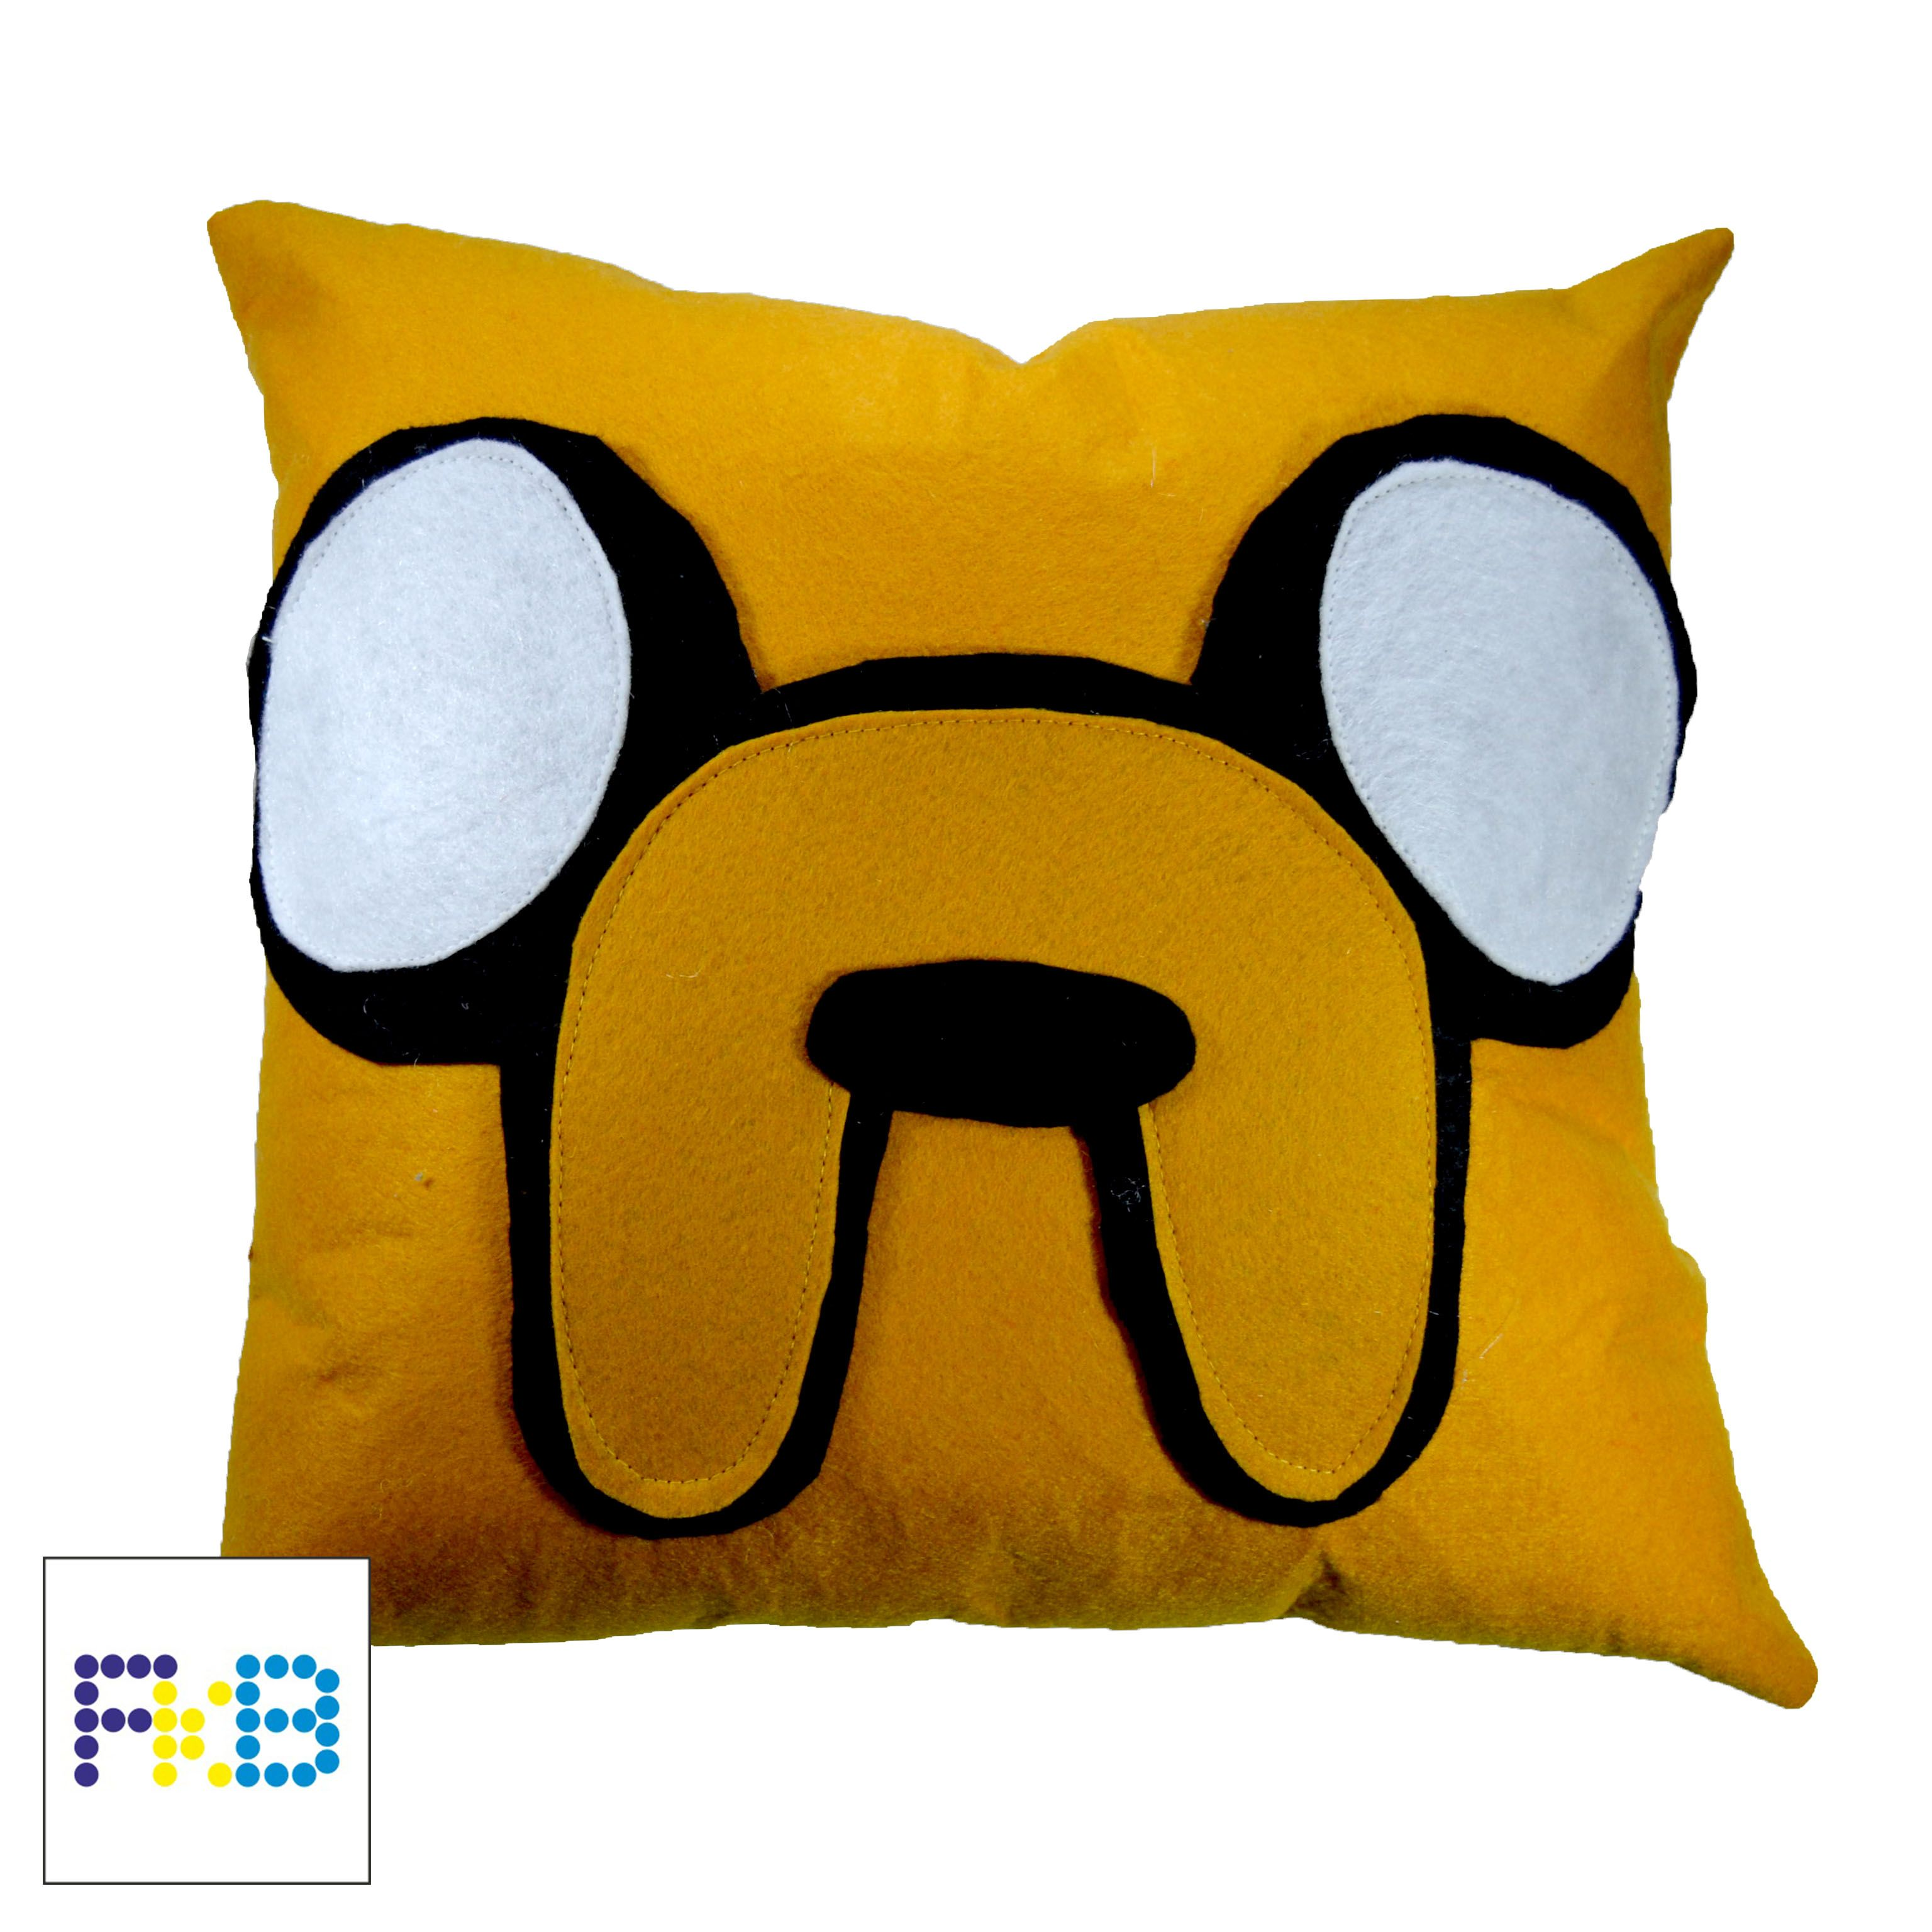 Handmade Adventure time Jake pillow  #frikibeads #pillow #cojin #almohada #jake #adventuretime # horadeaventuras